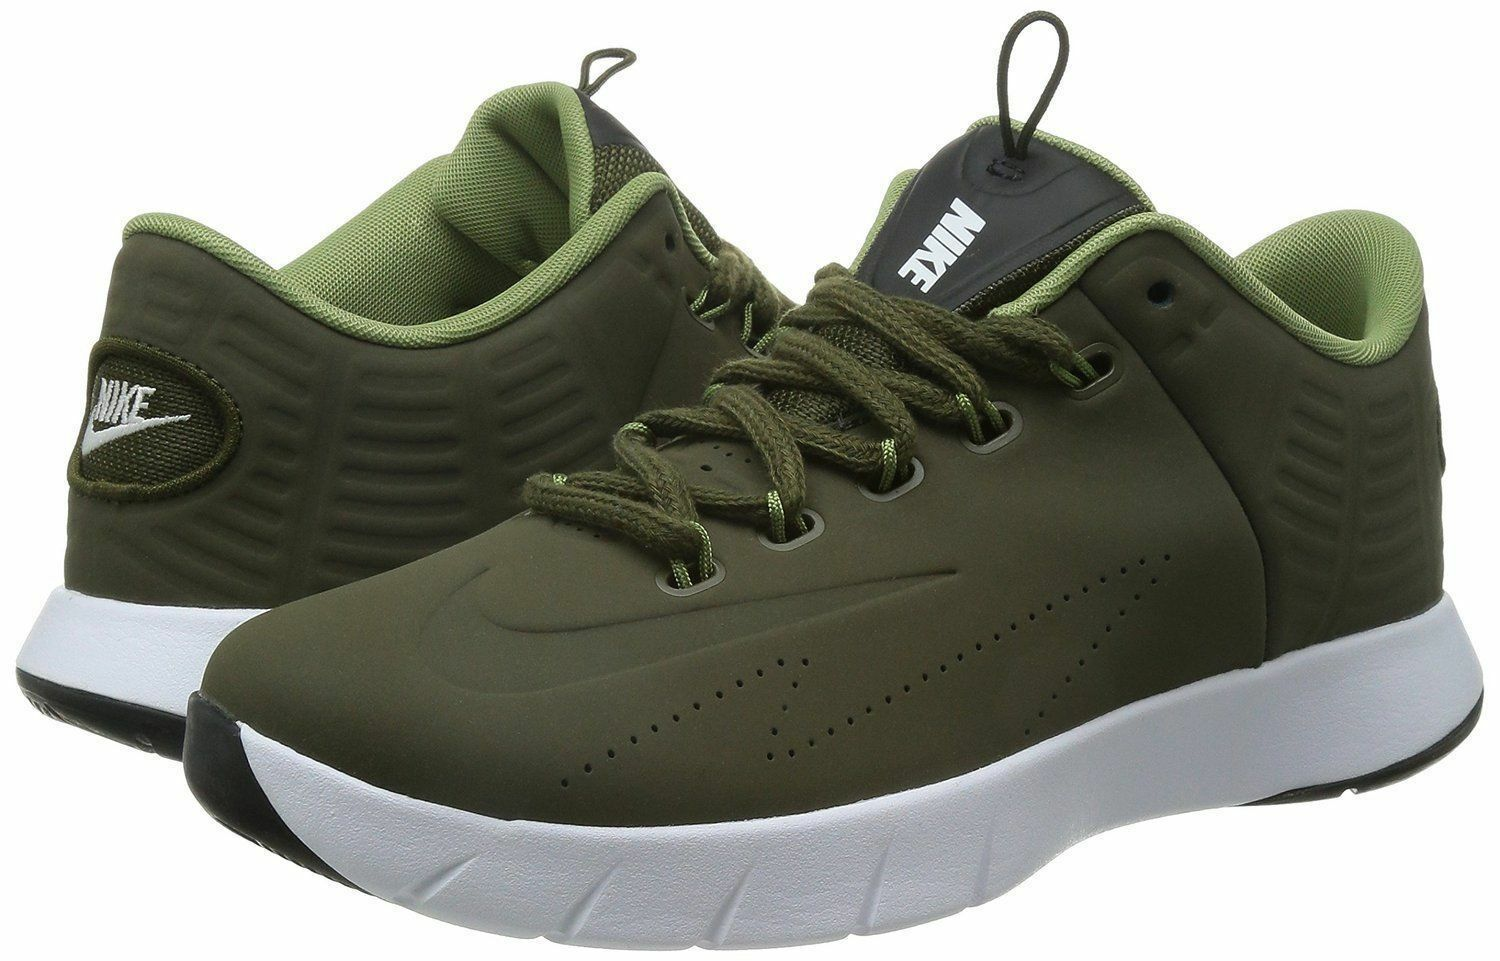 NIKE LUNAR HYPERREV LOW EXT SNEAKERS MEN SHOES OLIVE 802557-300 SIZE 11.5 NEW